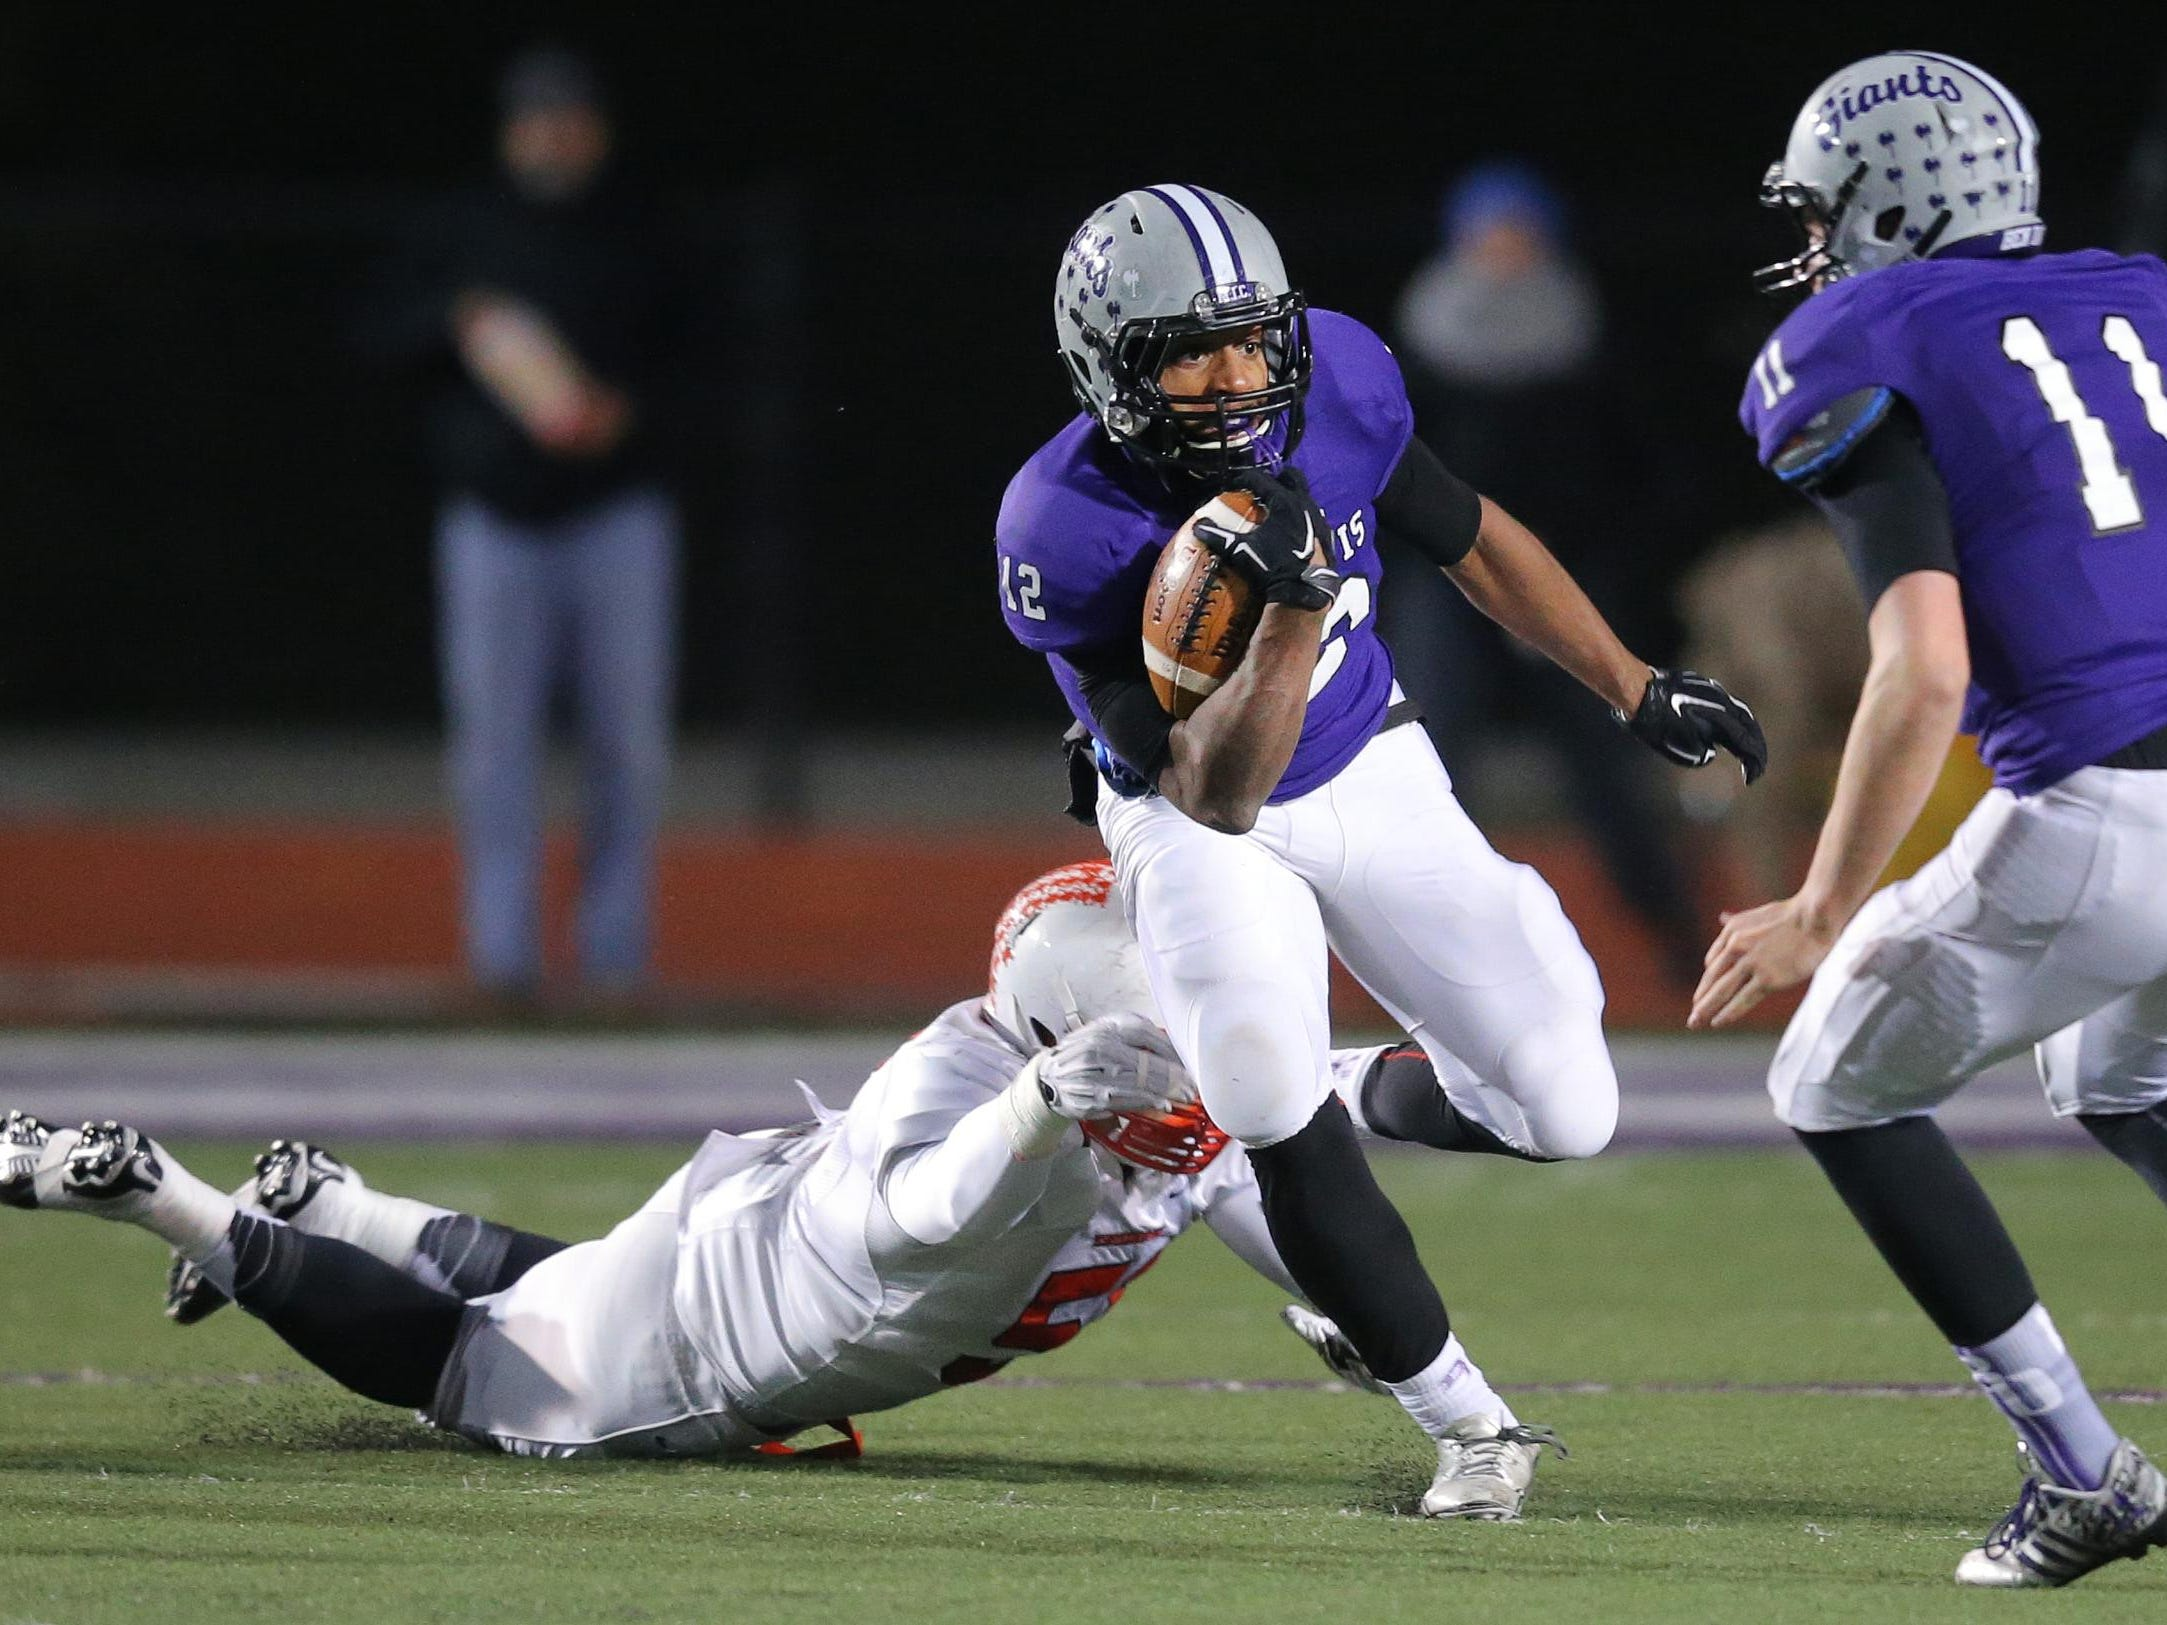 Ben Davis running back Chris Evans breaks a tackle from Center Grove player Jovan Swann on a long touchdown run in the first half of the IHSAA Semi-State game held at Ben Davis High School on Friday, Nov. 14, 2014.